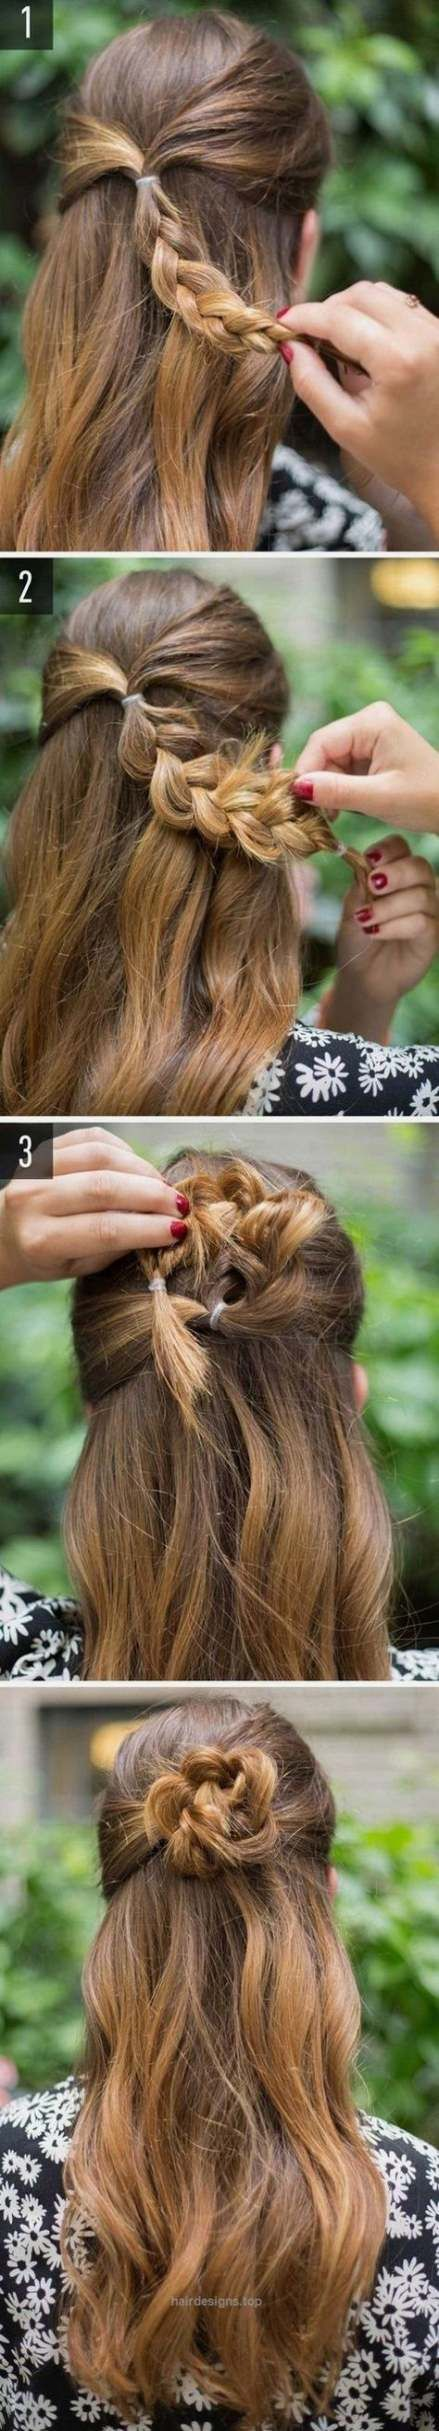 Hair Styles Easy Cute Messy Buns 35 Ideas